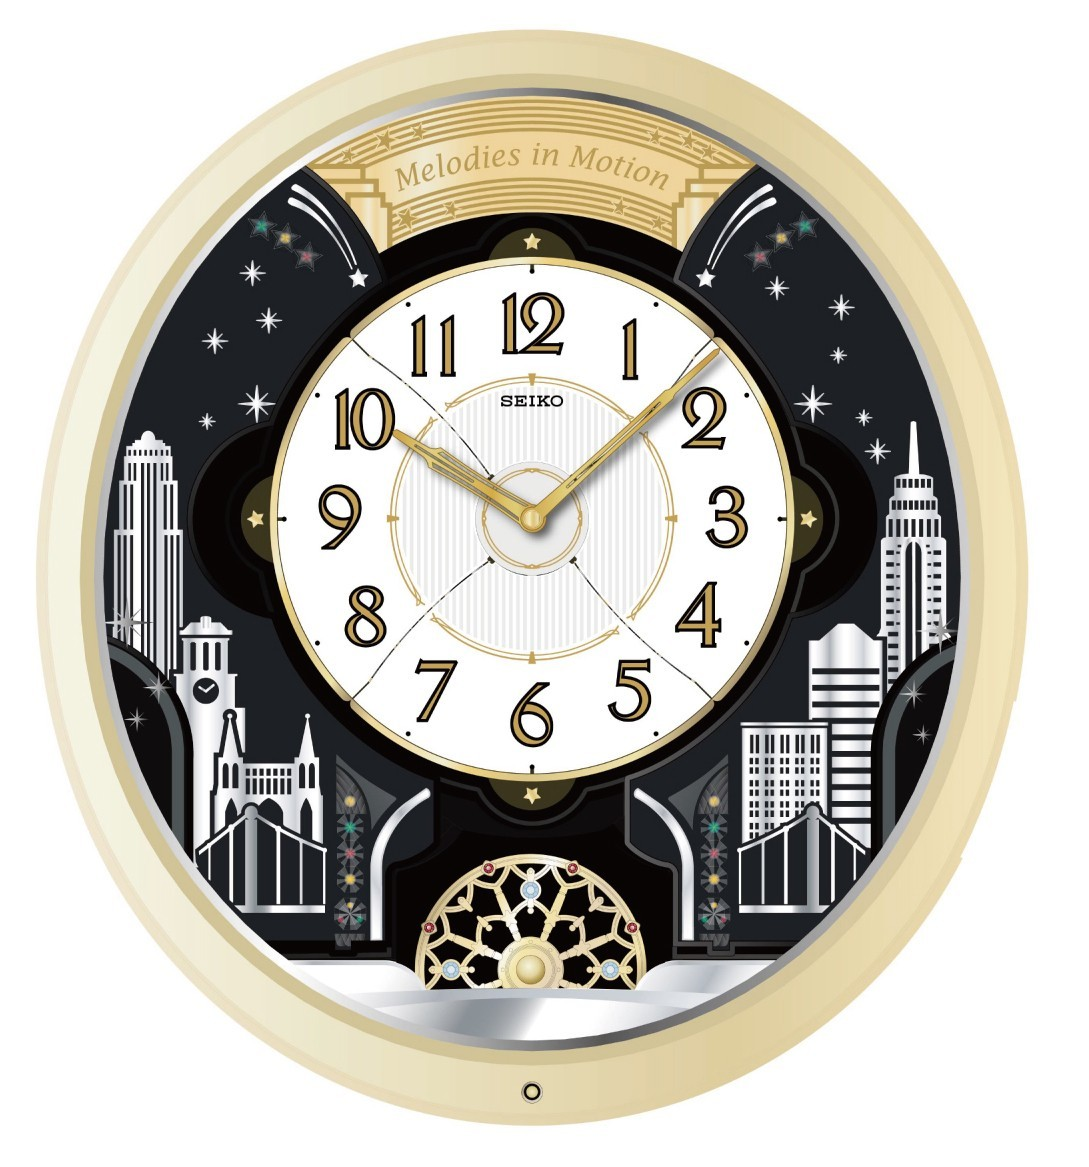 Seiko Melodies In Motion Musical Wall Clock Swarovski